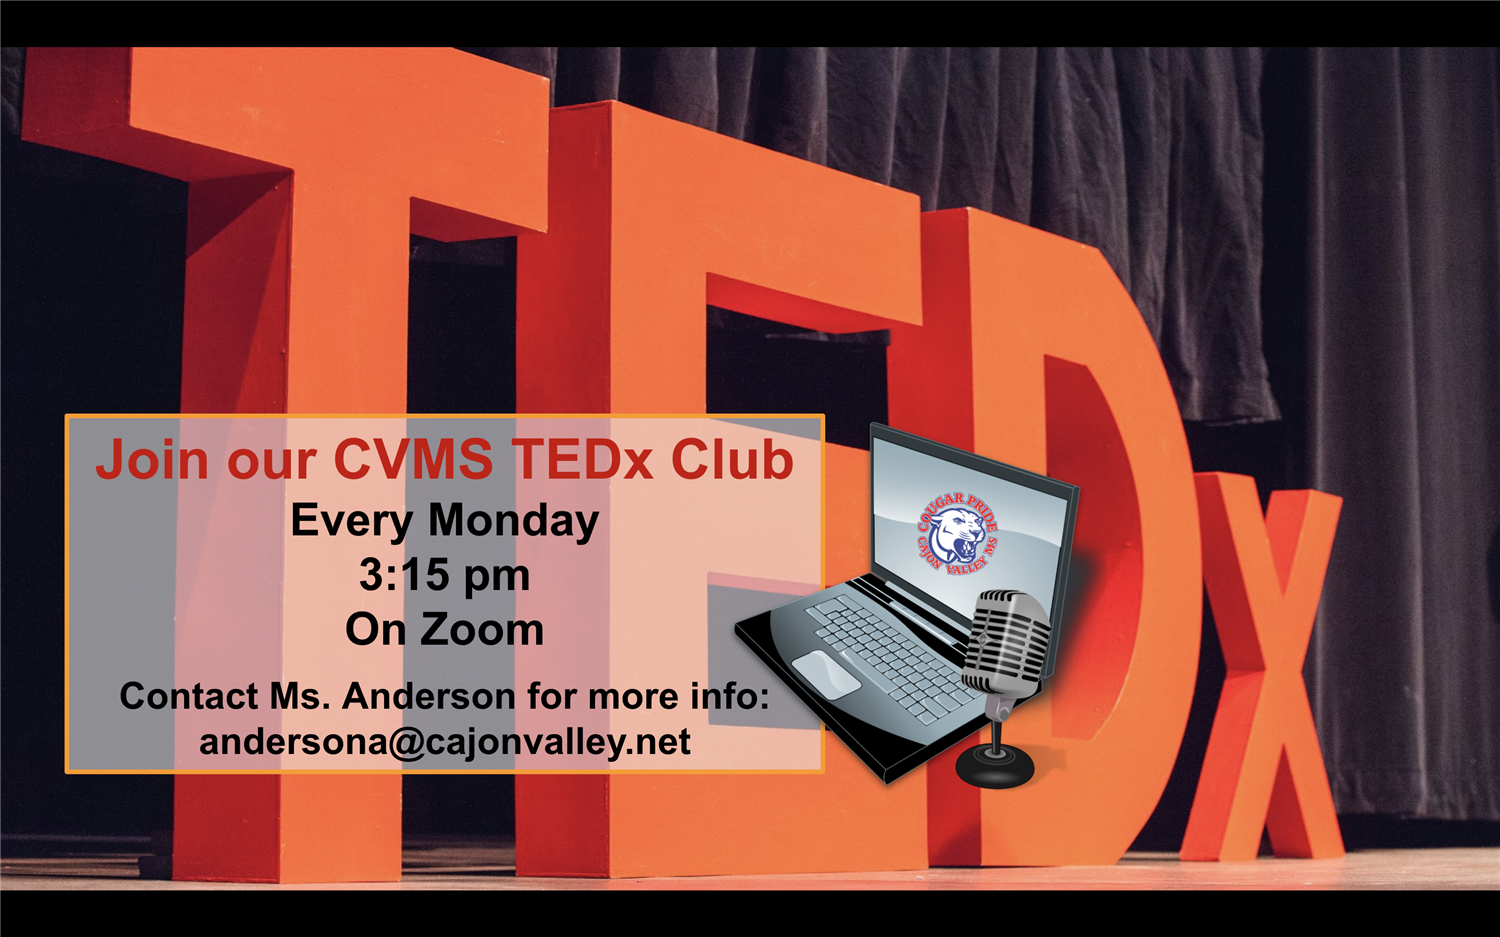 #CVMScougars! Have something to say? Join our CVMS TEDx Club! (see pic for more details) #CVMScougarPRIDE